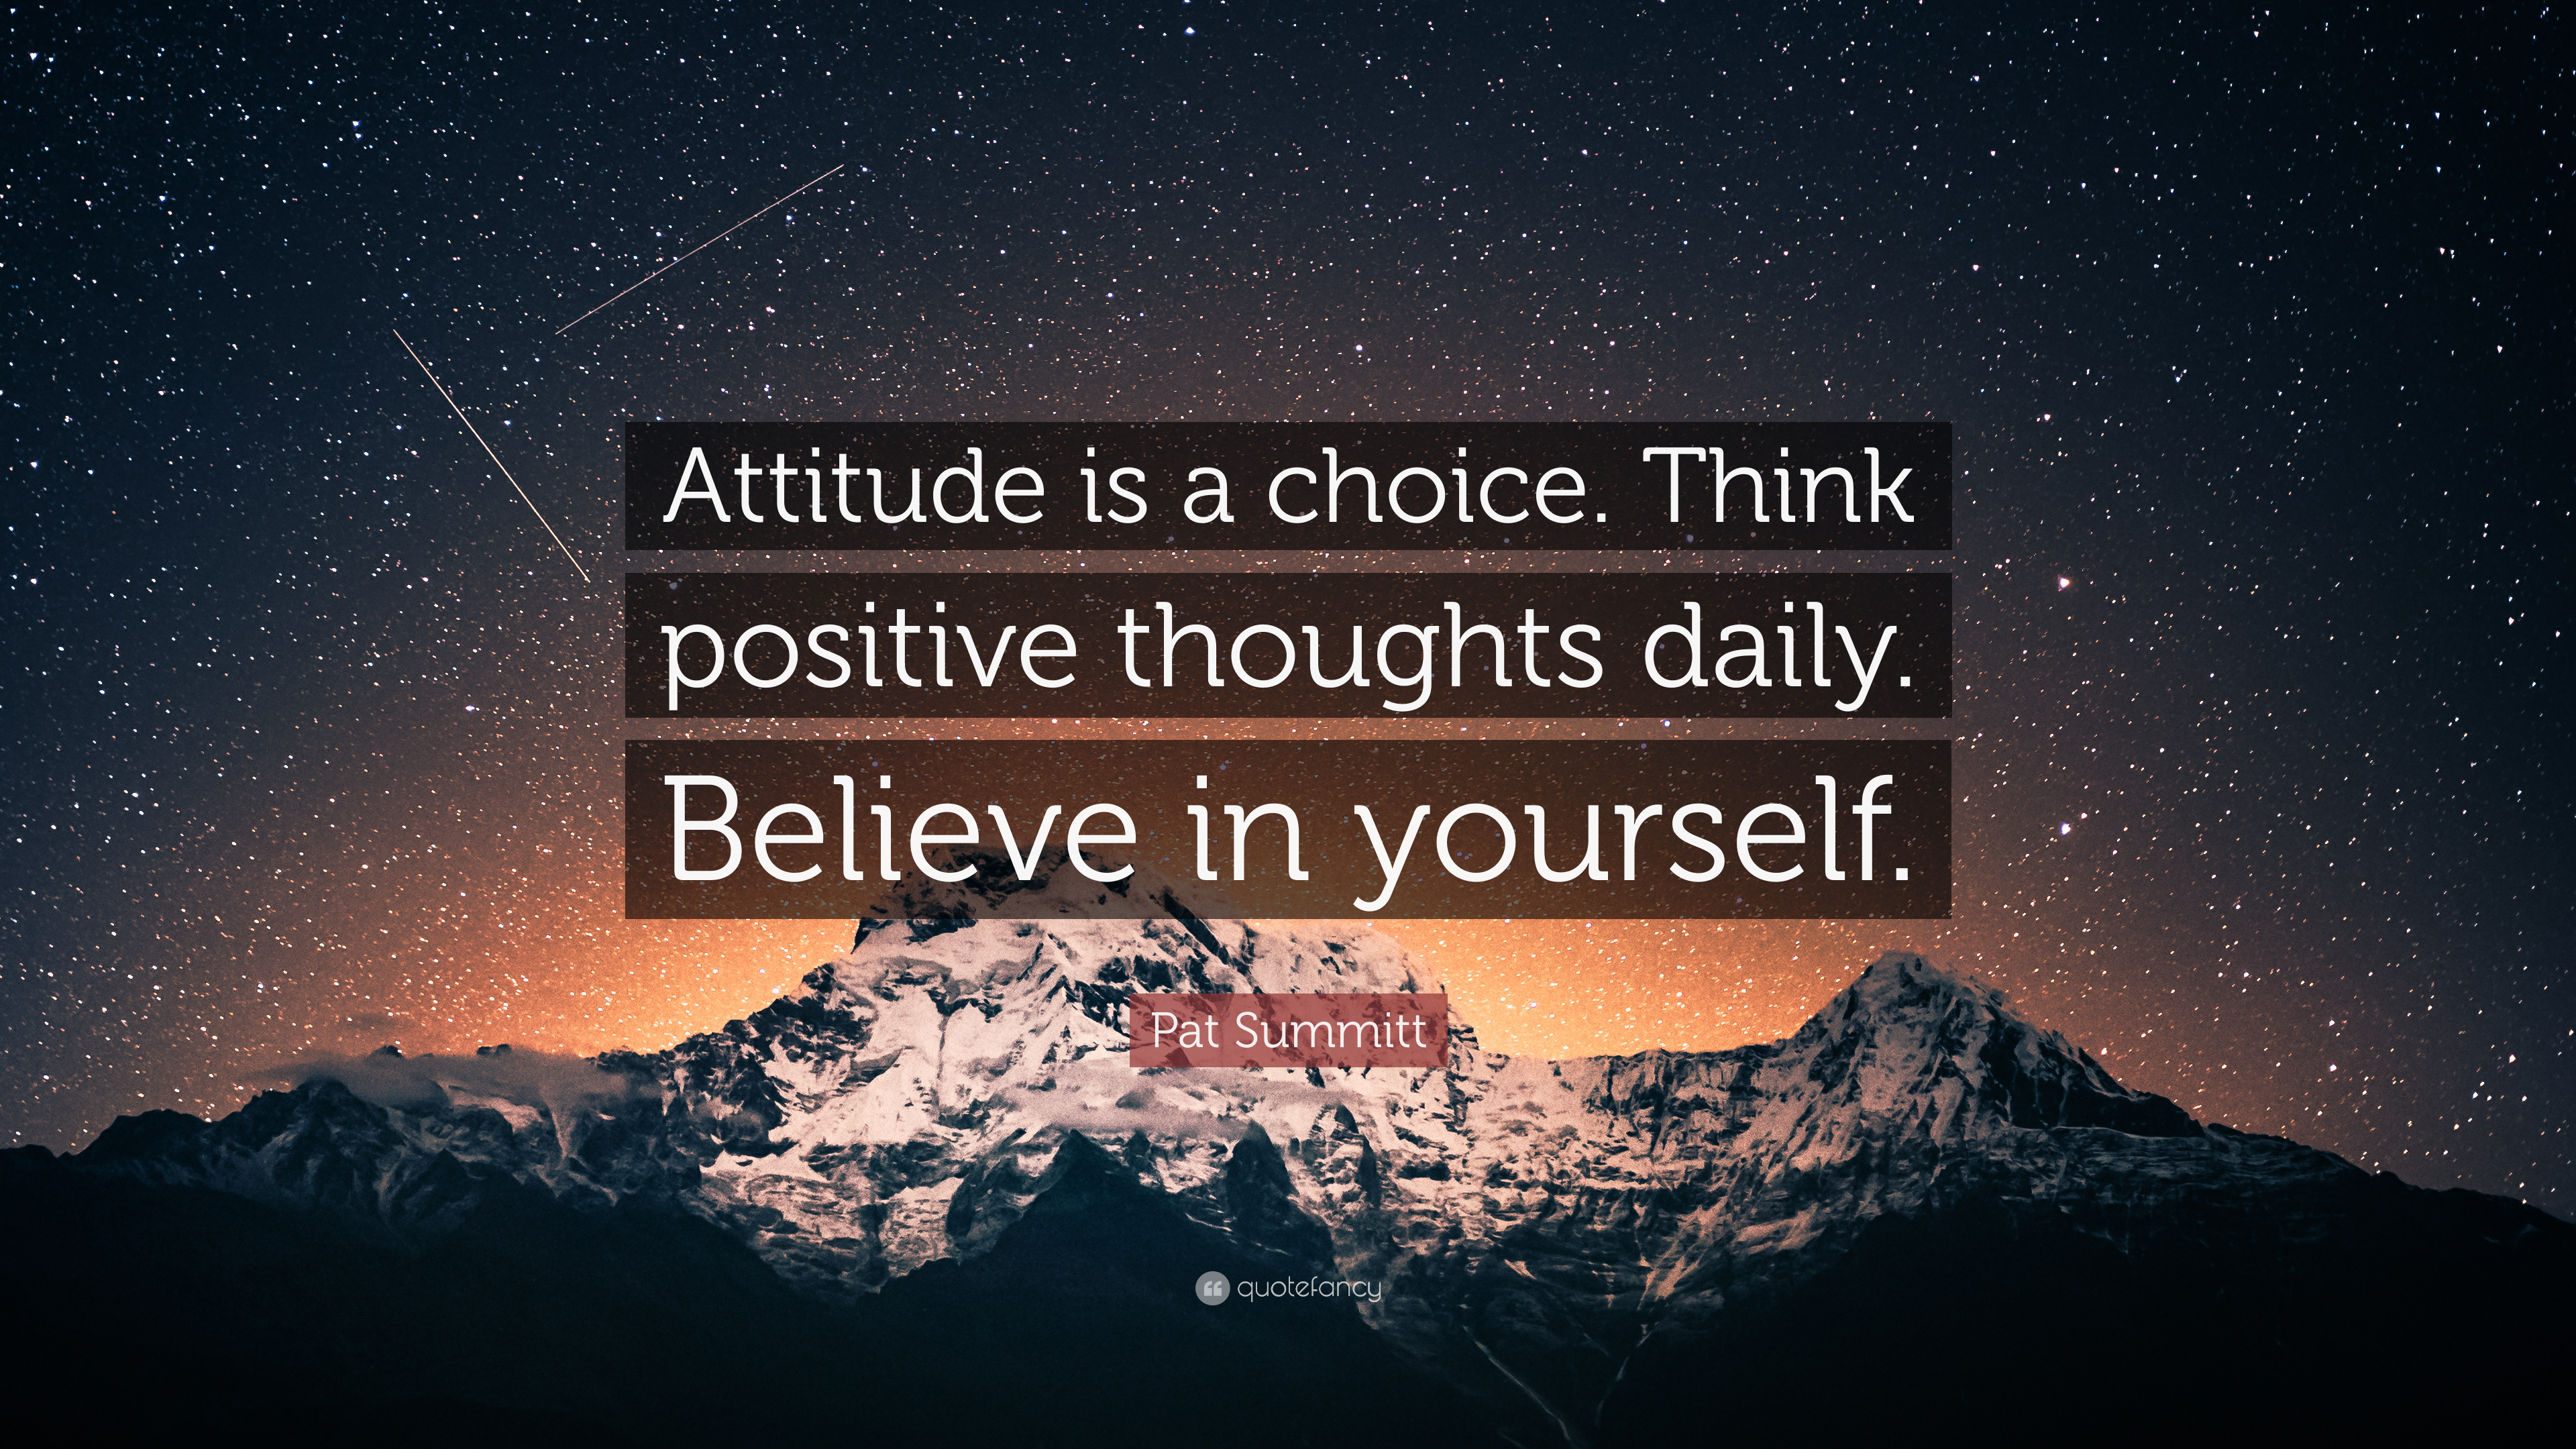 Pat Summitt Quote Attitude Is A Choice Think Positive Thoughts Daily Believe In Yourself 9 Wallpapers Quotefancy